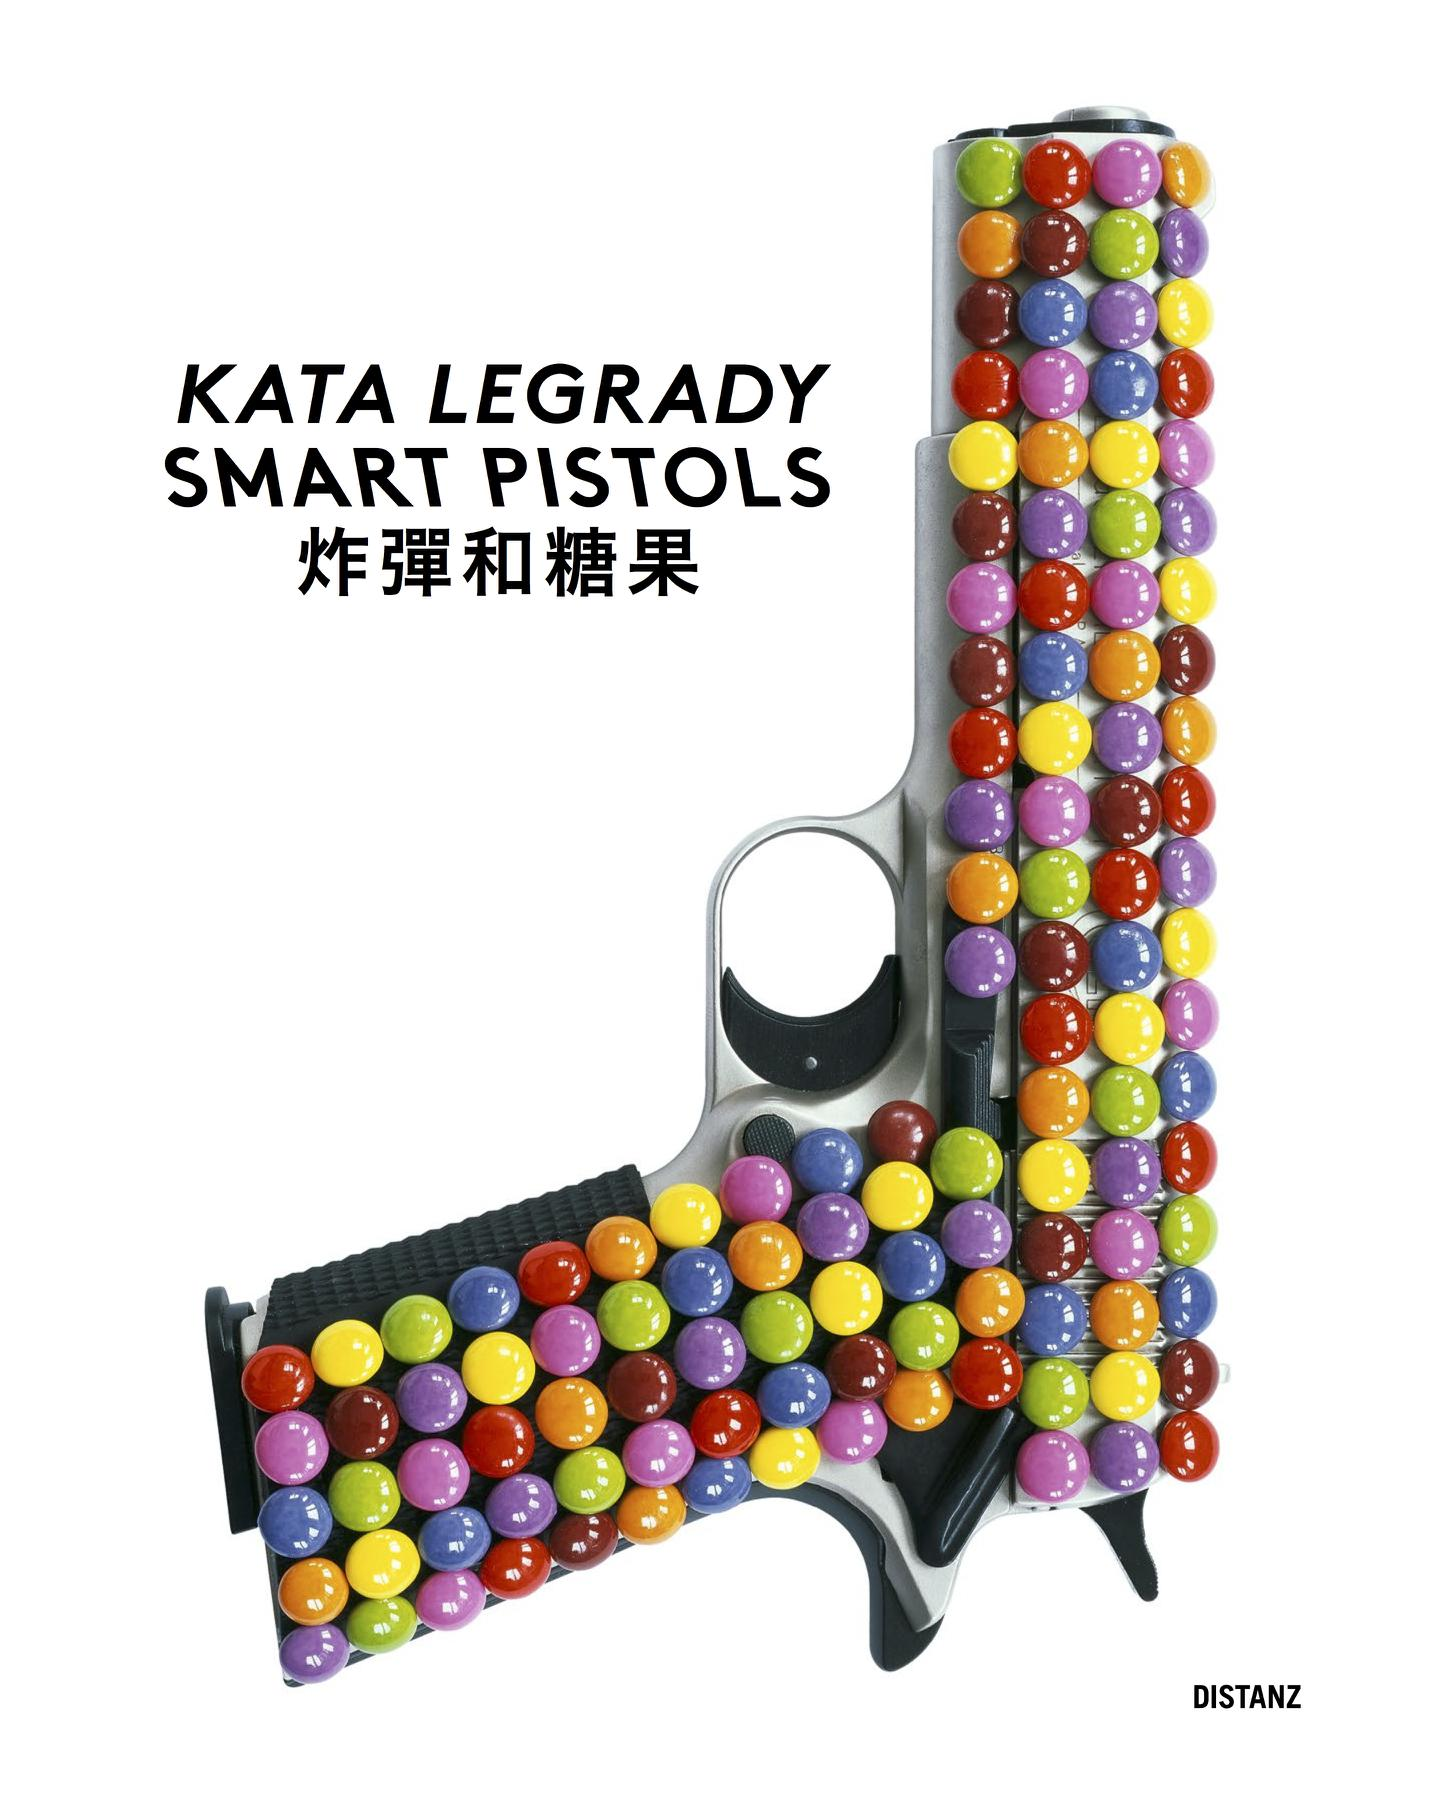 Kata Legrady: Smart Pistols, Bild: Hrsg. von Peter Weibel. Berlin: Distanz, 2014. / A ZKM book..